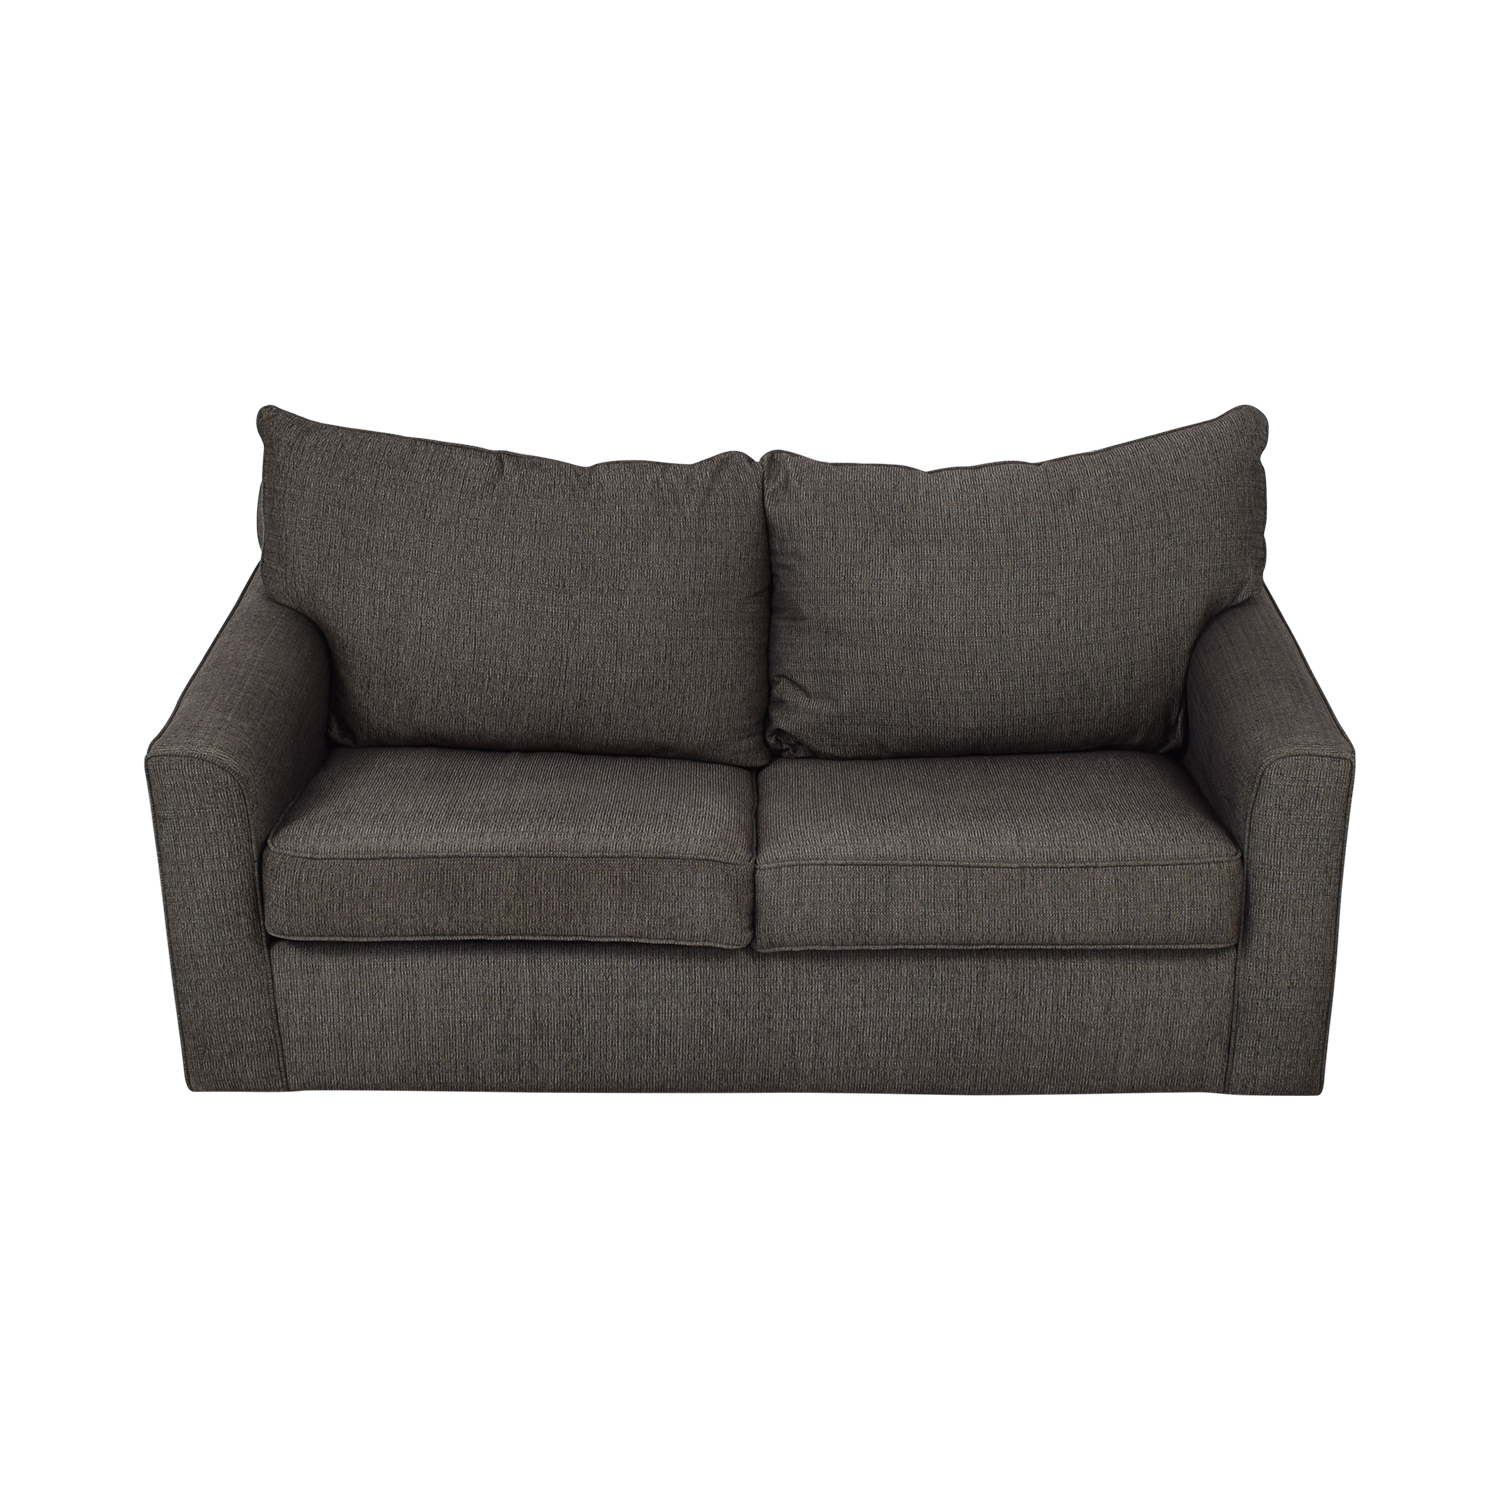 Raymour & Flanigan Raymour & Flanigan Trayce Chenille Full Sleeper Sofa price